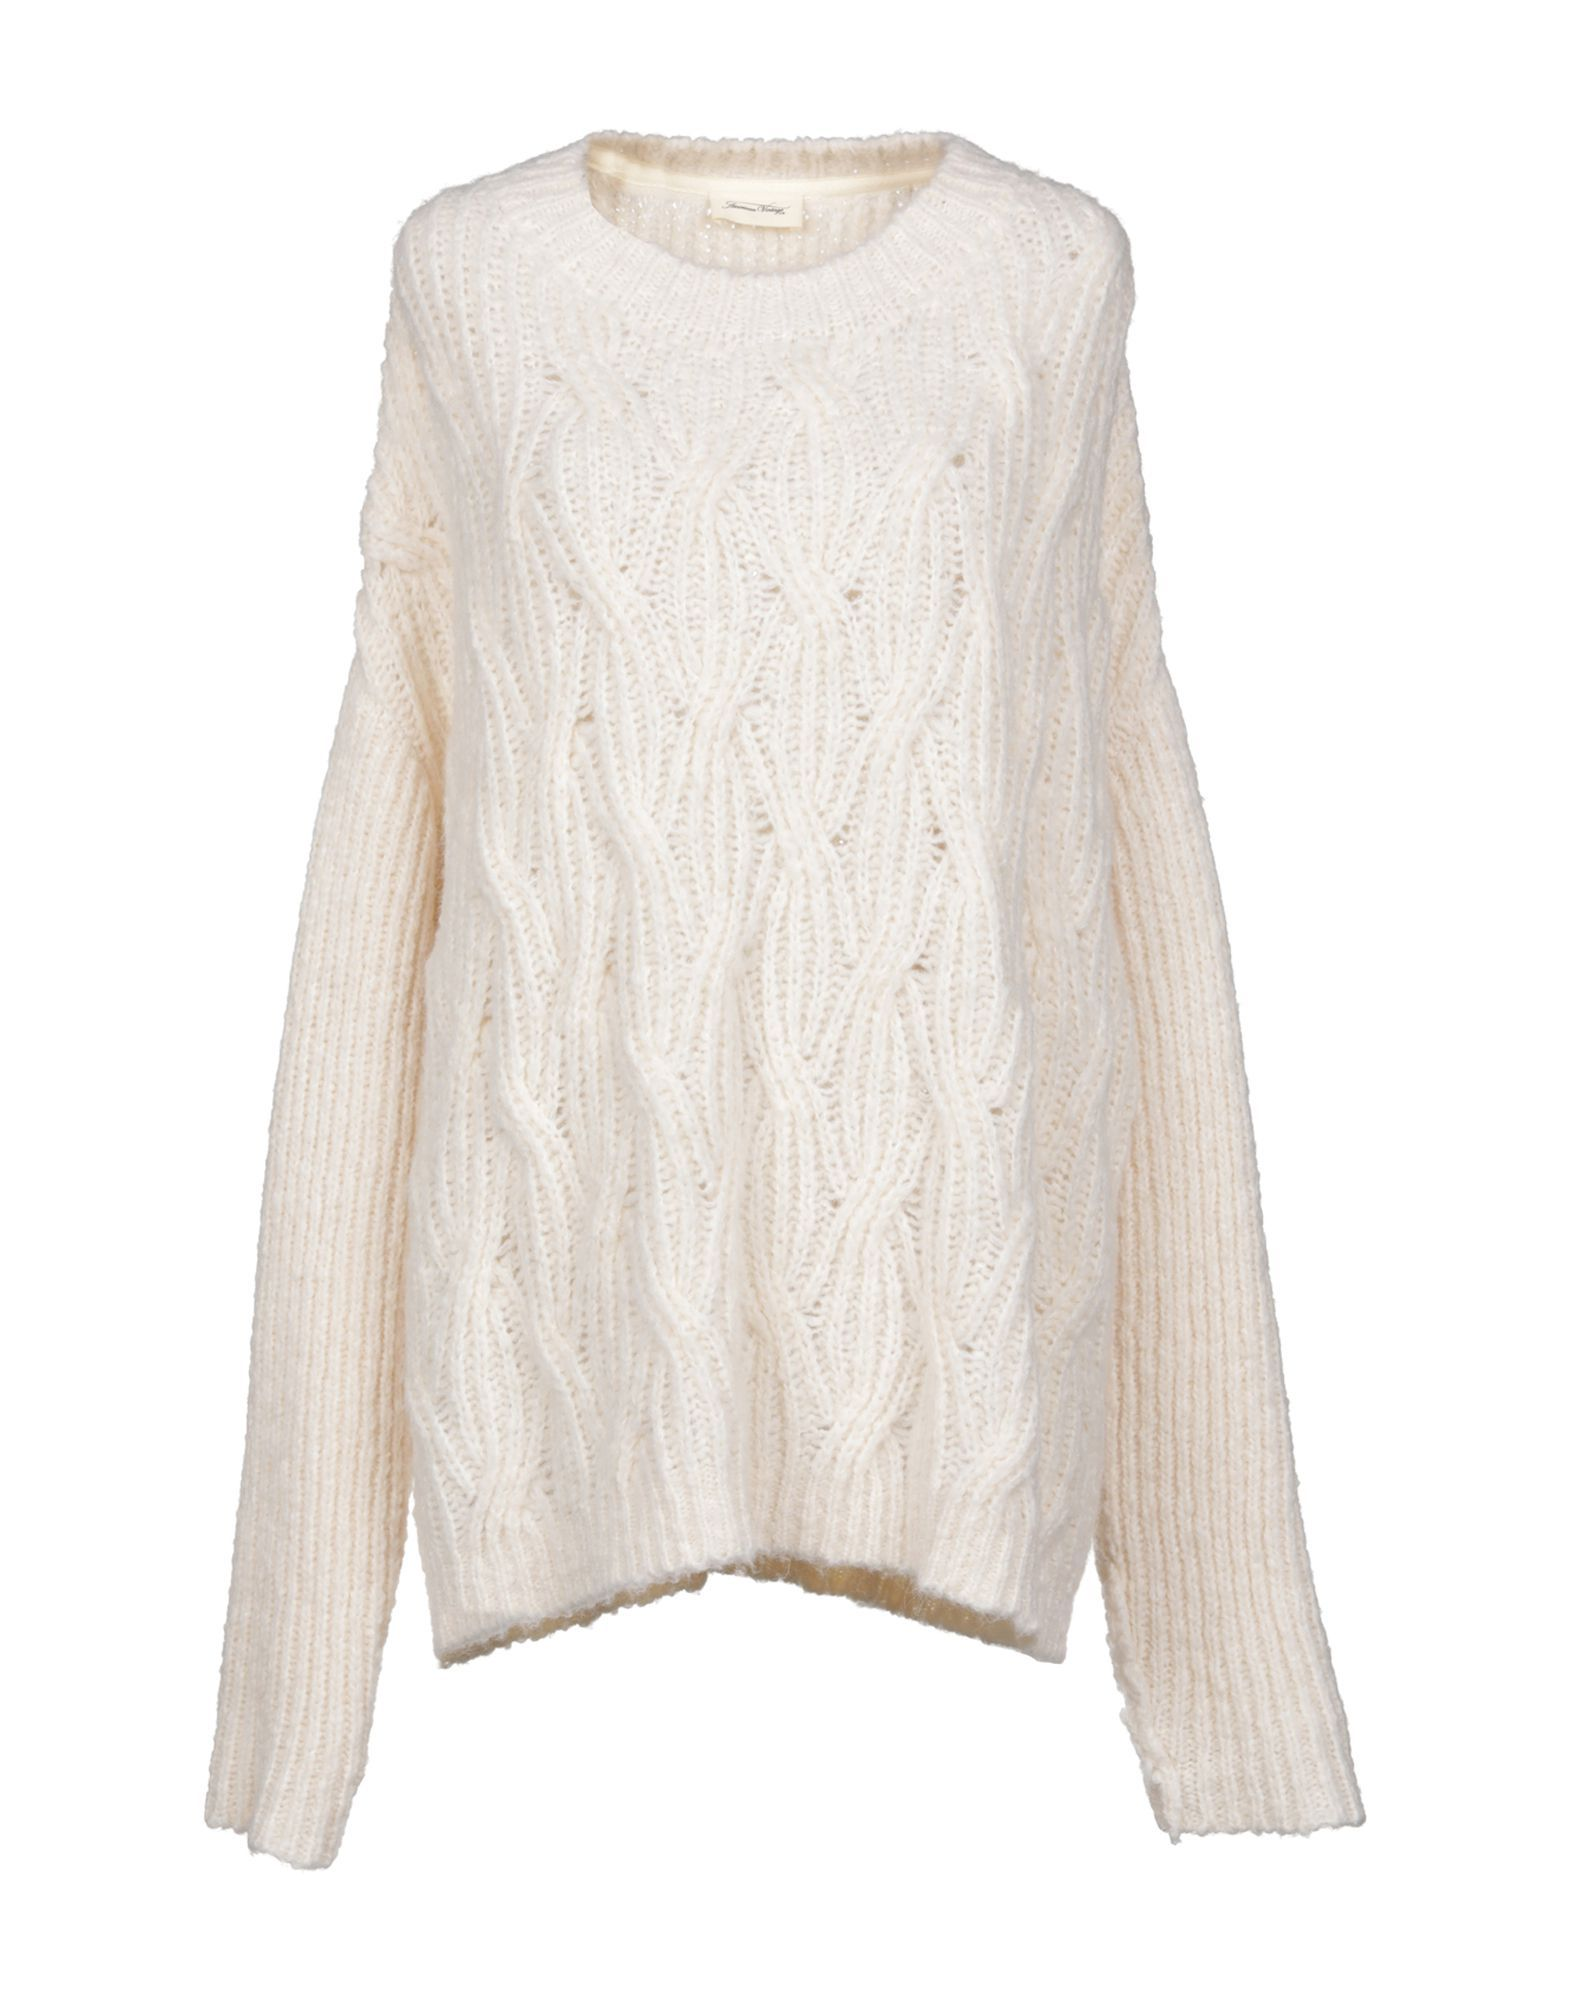 American Vintage Ivory Cable Knit Jumper